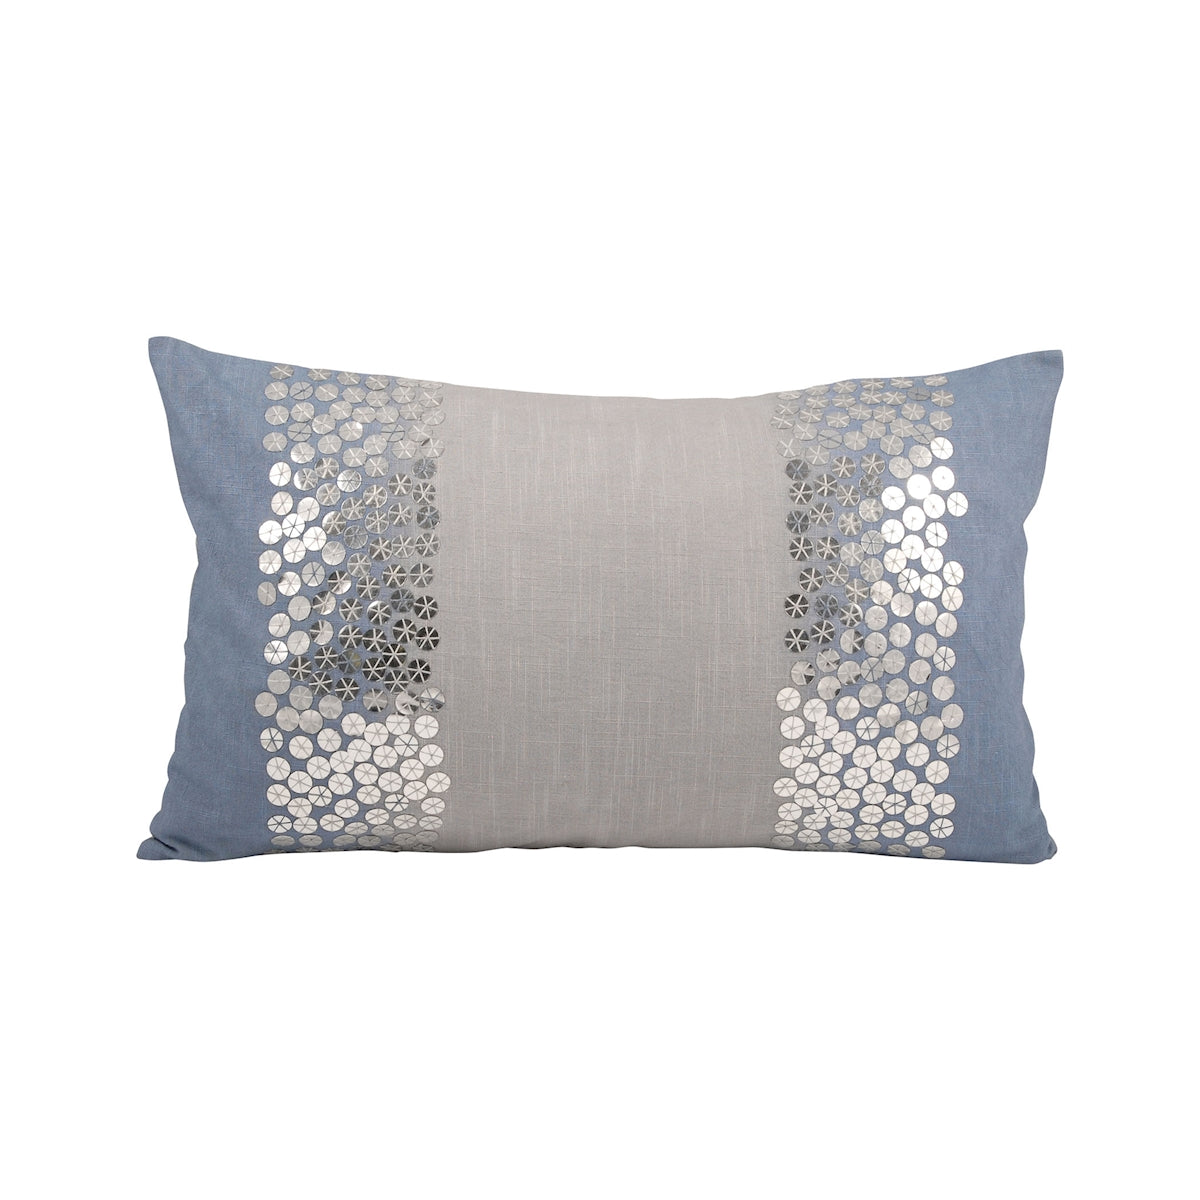 Nautica Shimmer Pillow 12 in. x 20 in.